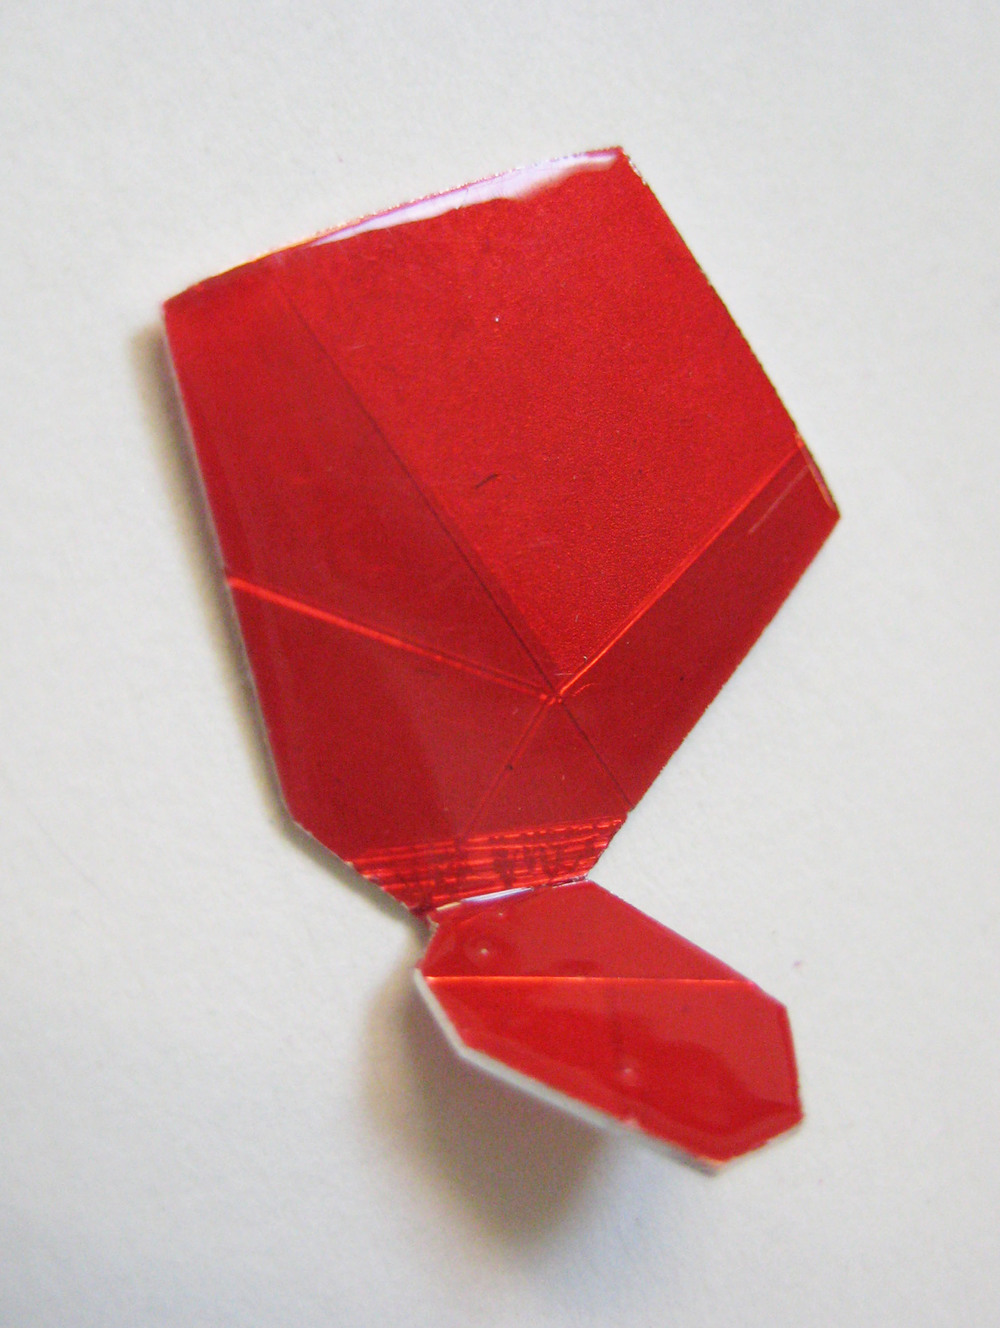 18-Red Pin Gem-Voegele.jpg